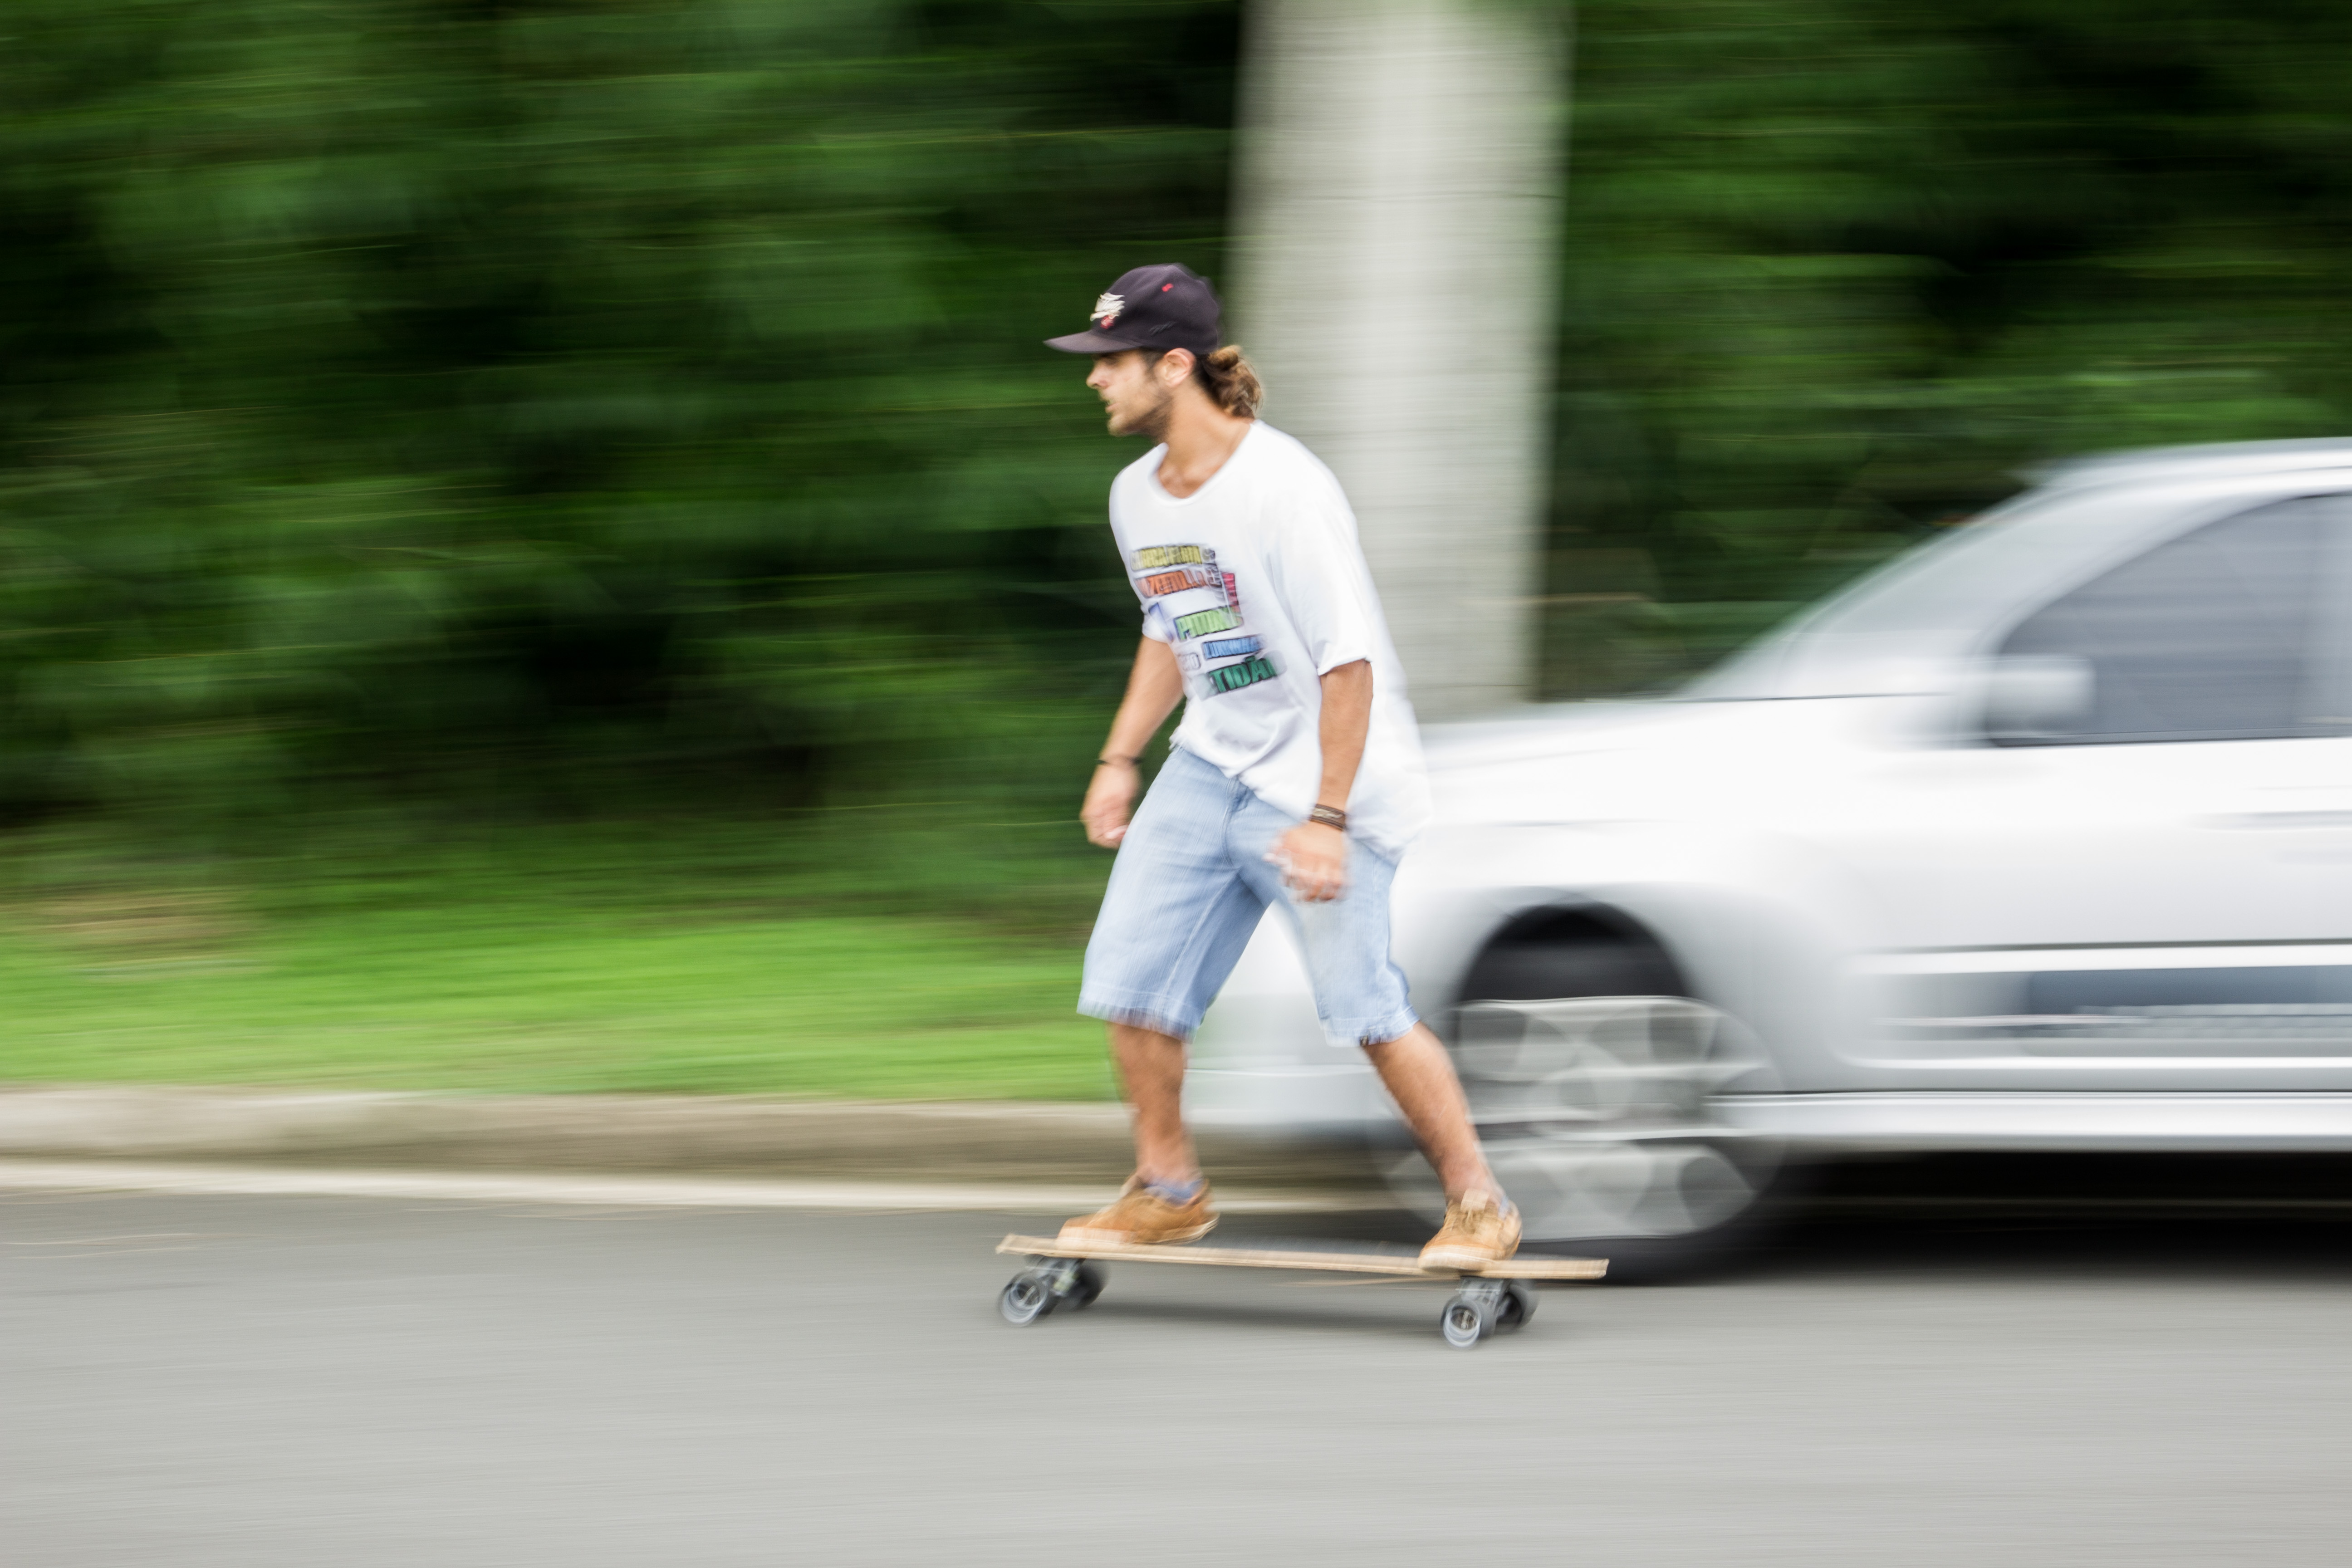 Man Playing Longboard on Road